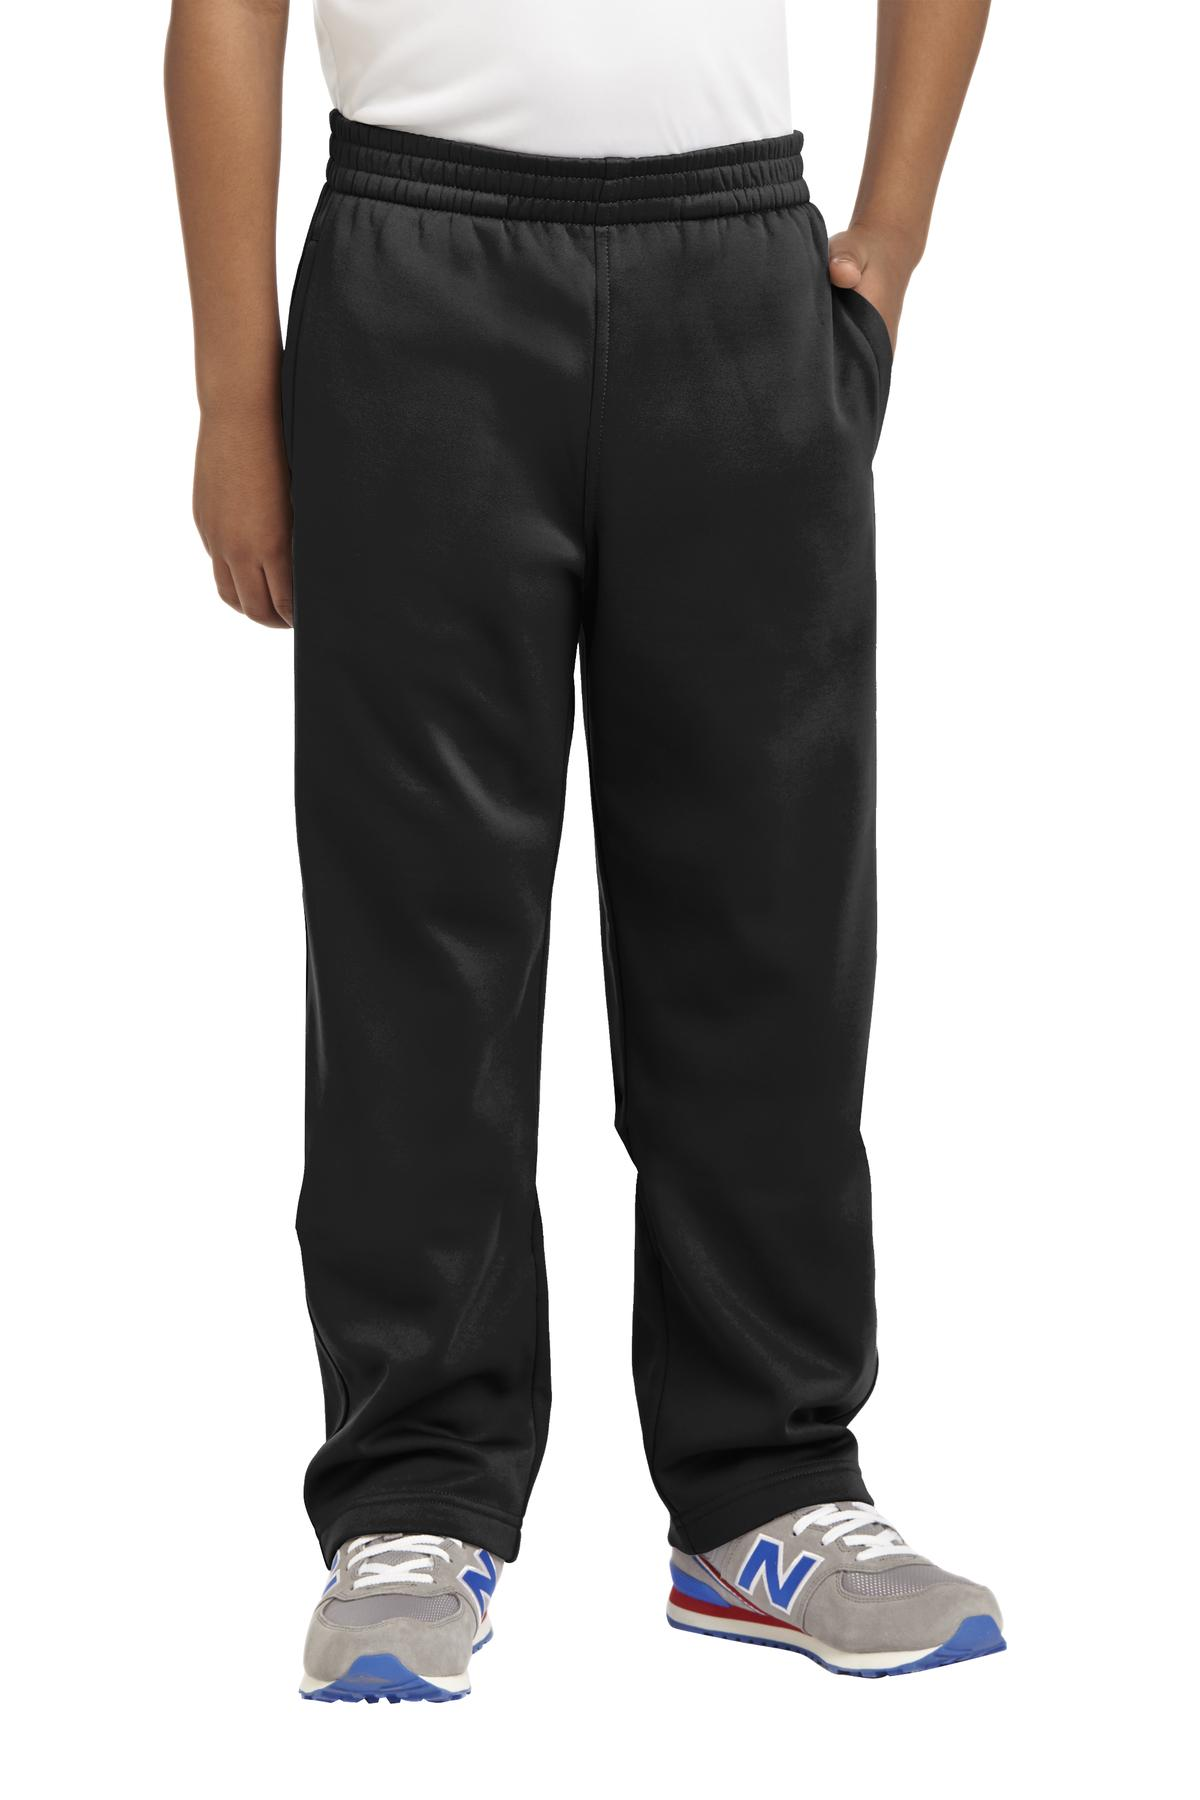 Sport-Tek ®  Youth Sport-Wick ®  Fleece Pant. YST237 - Black